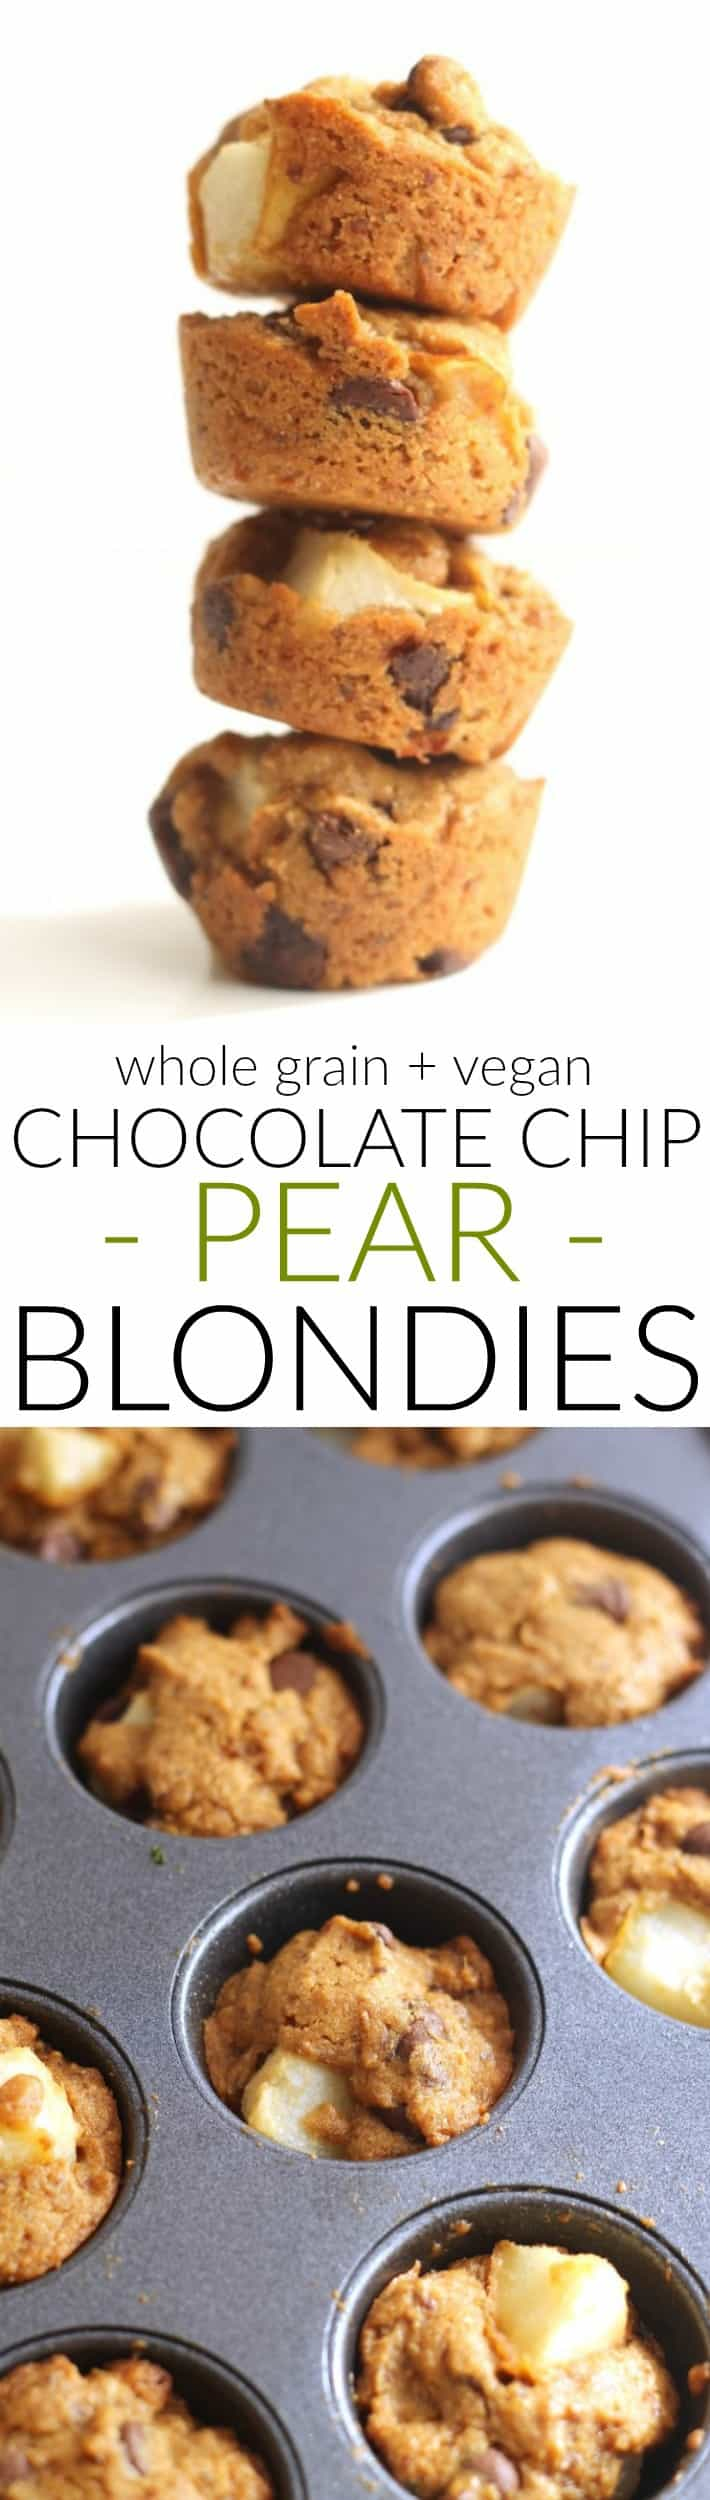 These vegan, whole grain Chocolate Chip Pear Blondie Bites are the perfect dessert to satisfy any sweet tooth!